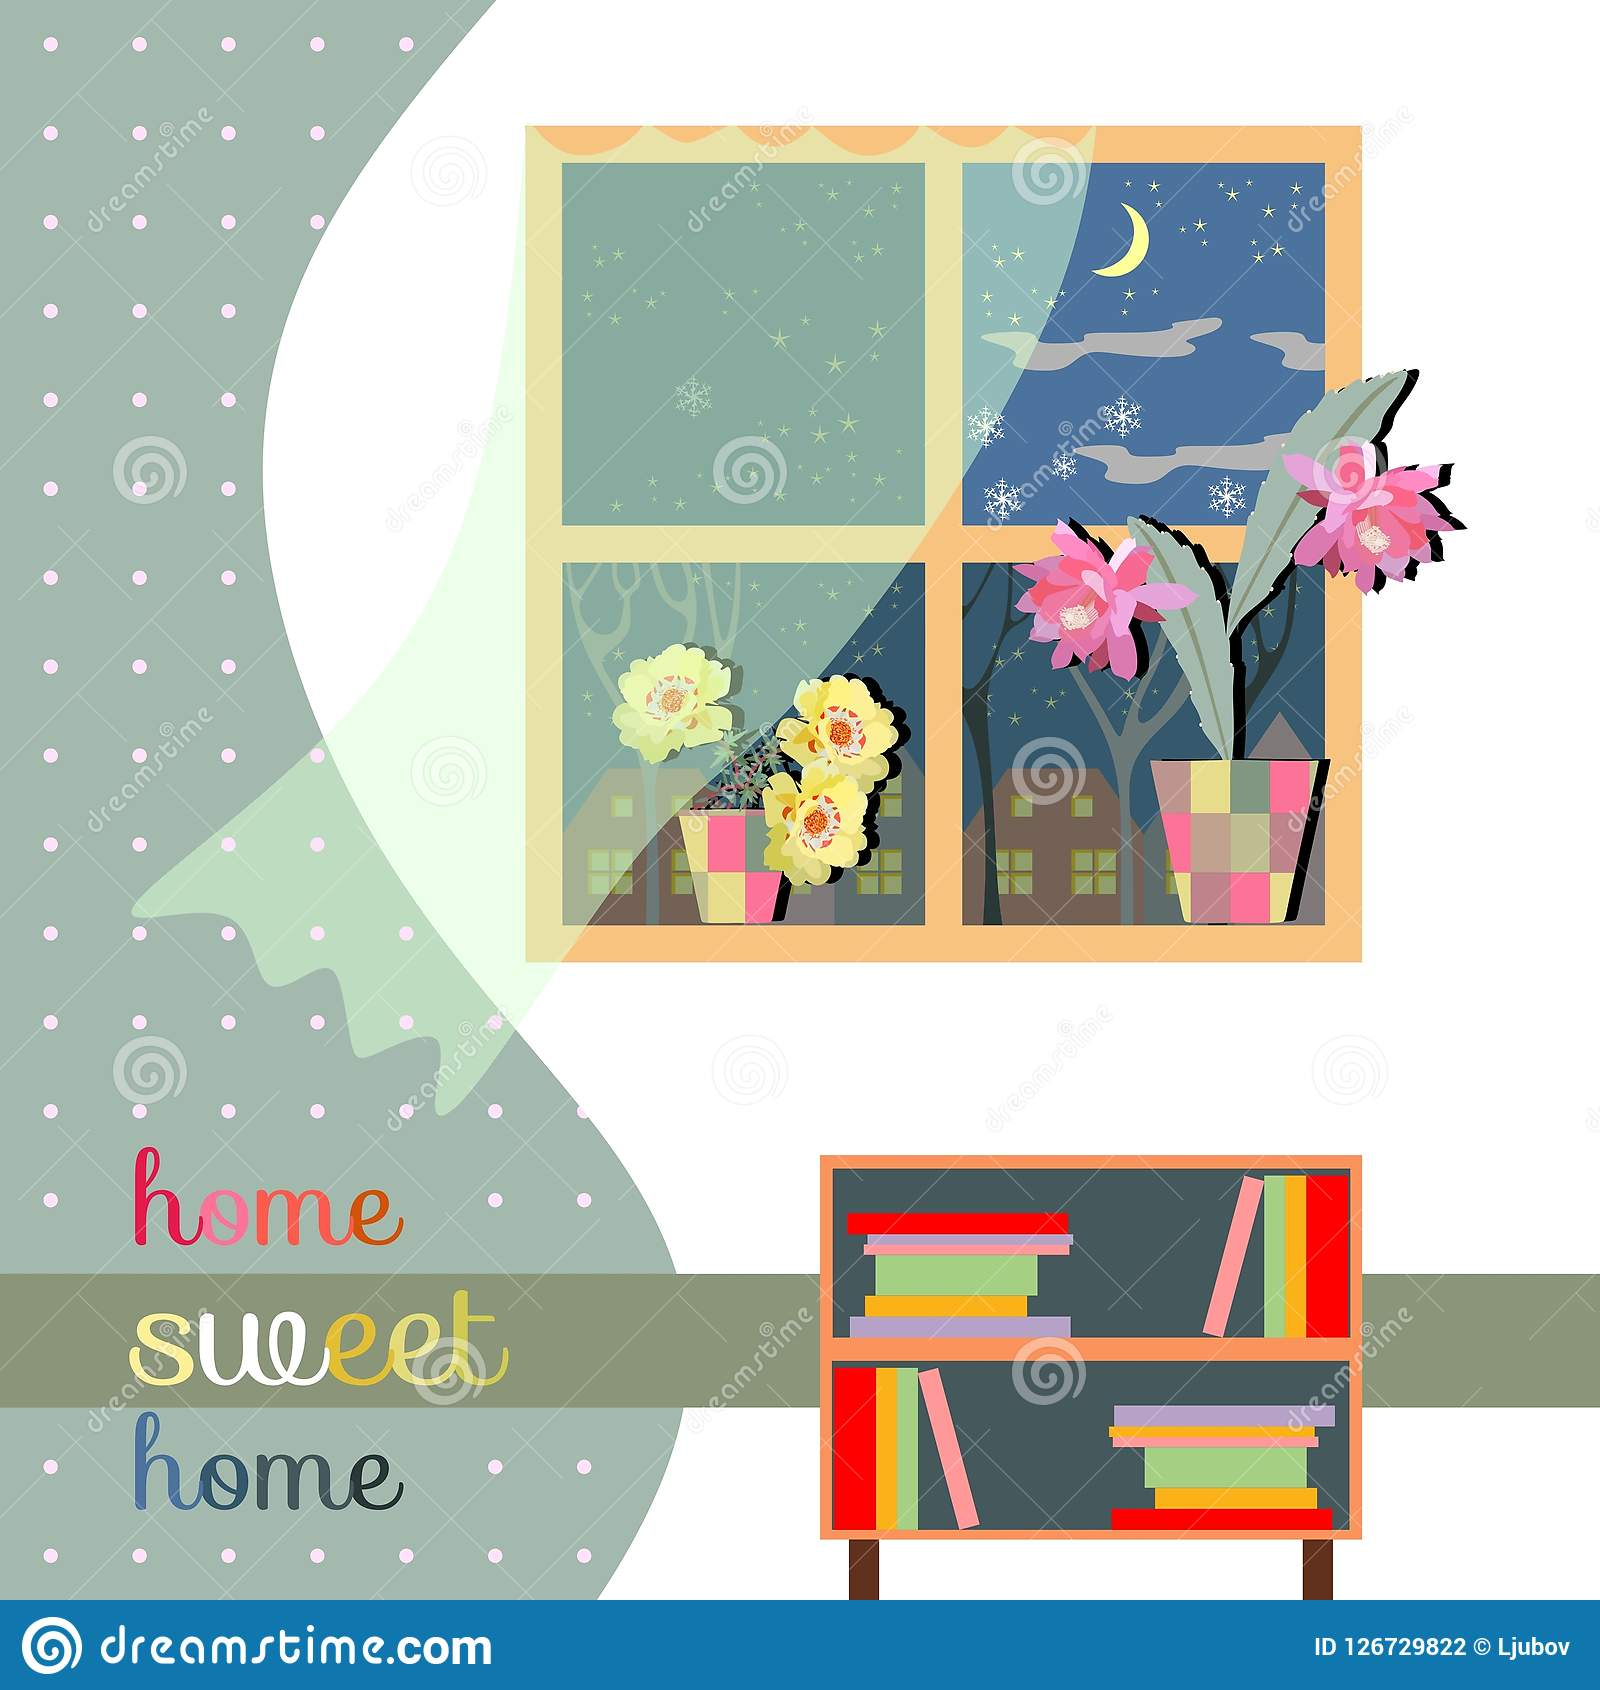 Sweet home. Cute card of interior with window with curtain and flowers, bookcase and polka dot wallpaper.  Royalty Free Illustration